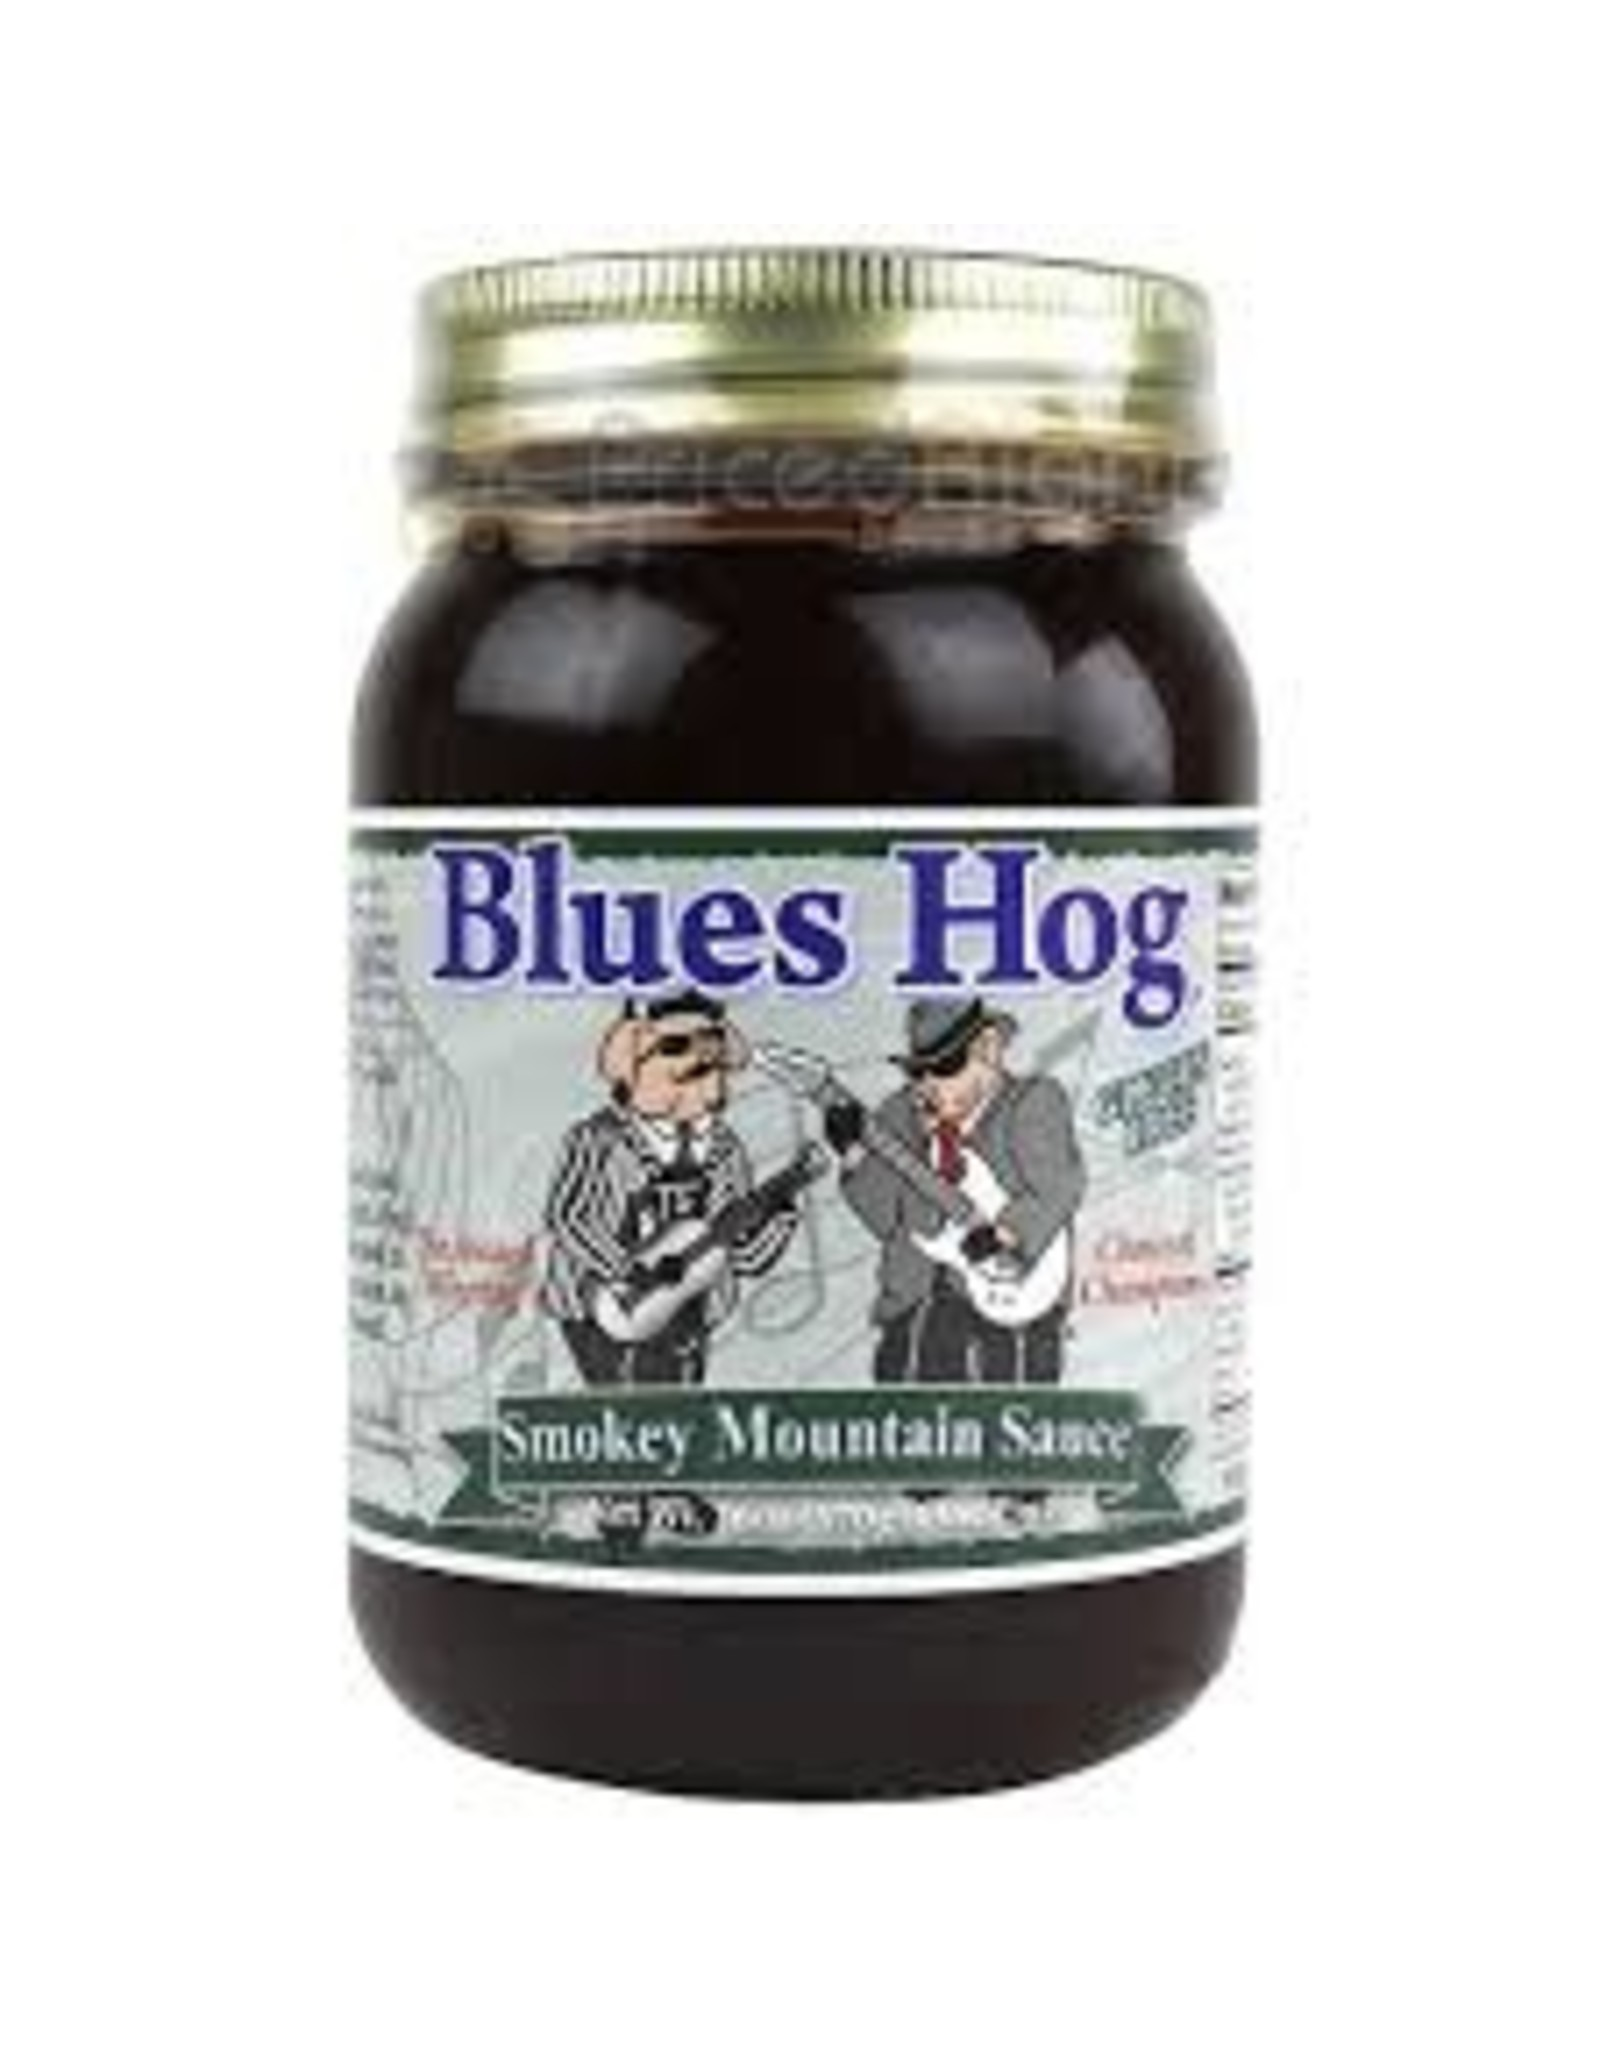 BLUES HOG BLUES HOG SMOKEY MOUNTAIN SAUCE 16 OZ